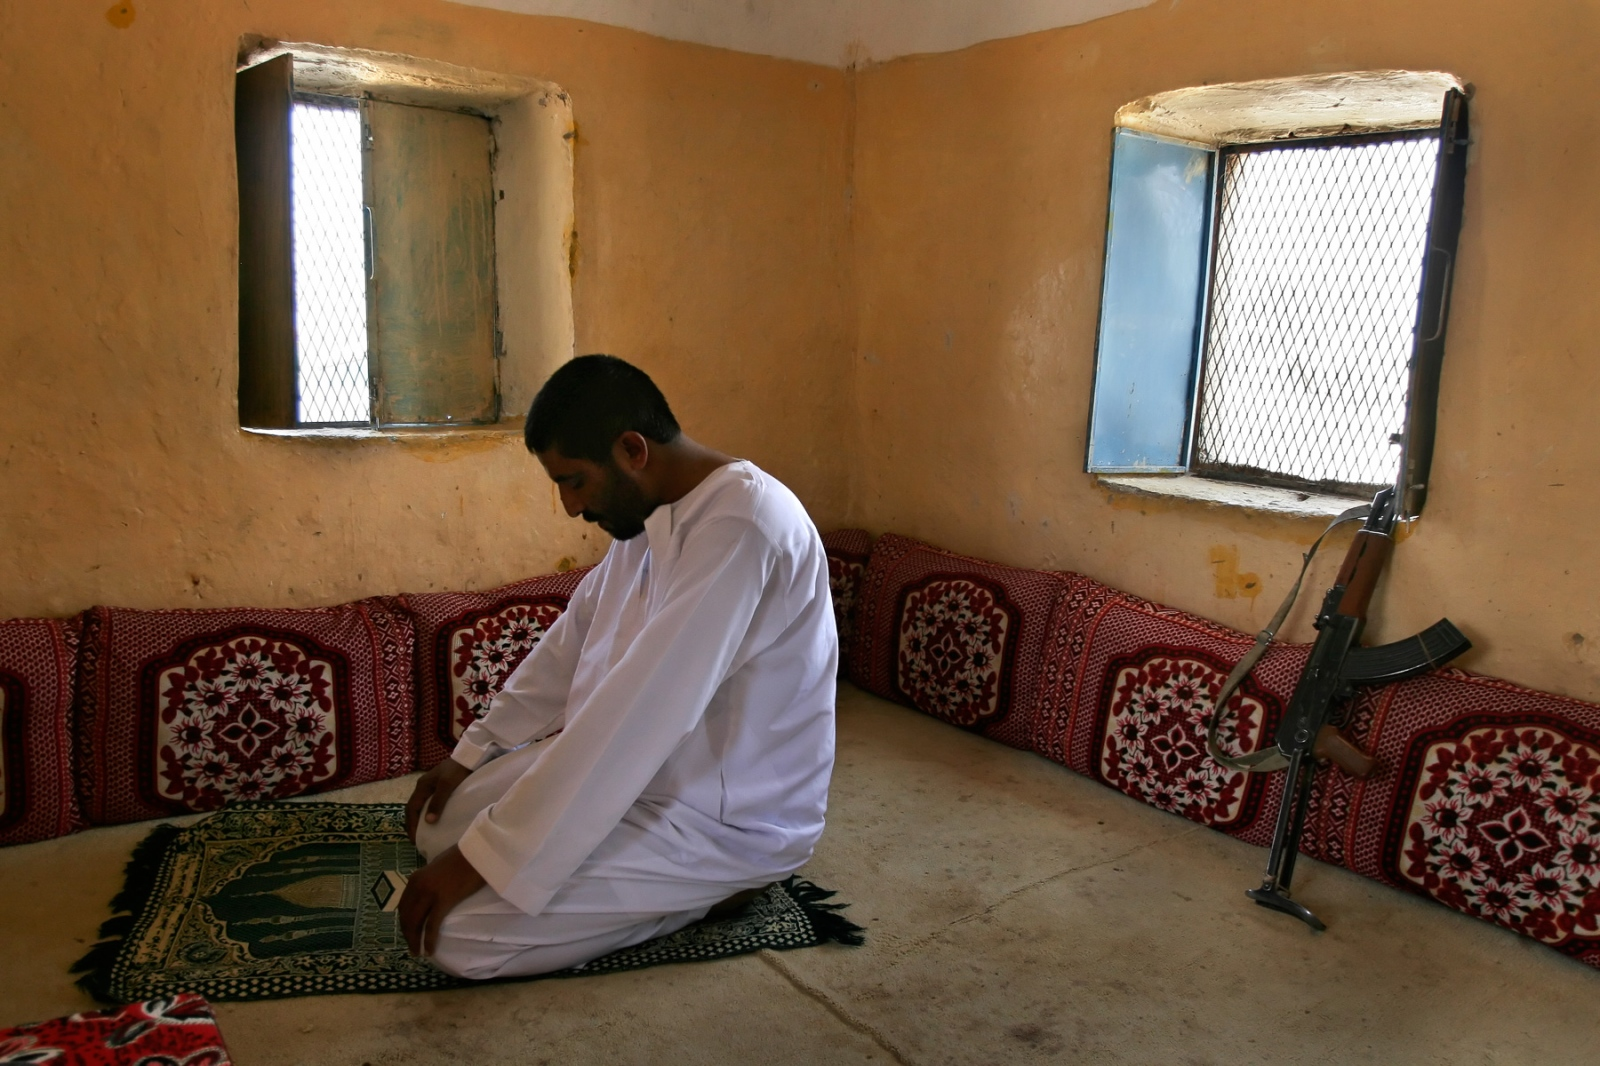 """In Al Jawf, Yemen, near the border of Saudi Arabia, Sheik Rabea al Okaimi controls a vast tribal area filled with people who are poor and uneducated, and who exist beyond government control. They are thought to be anti-American and sympathetic to al Queda, which Rabea disputes, """"We don't have terror in our area,"""" he says. """"What we have are tribal wars, poverty, and illiteracy,."""" Seeking a way to improve life in Al Jawf, Rabea sought help from an American NGO, but the obstacles he faces have so far proven to much to be overcome."""